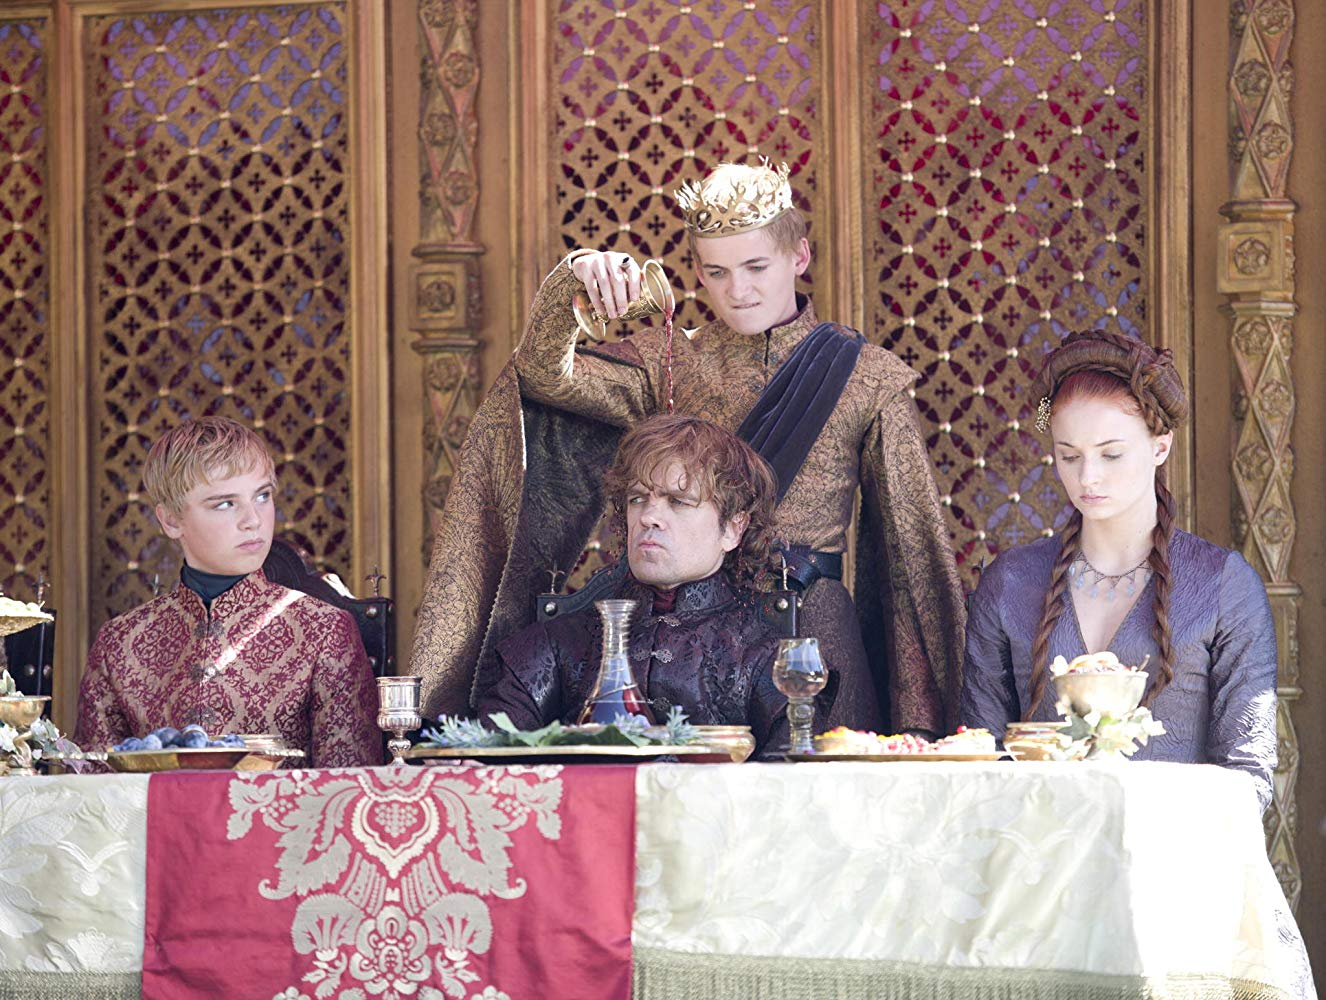 Peter Dinklage, Jack Gleeson, Dean-Charles Chapman, and Sophie Turner in Game of Thrones. Source: IMDB